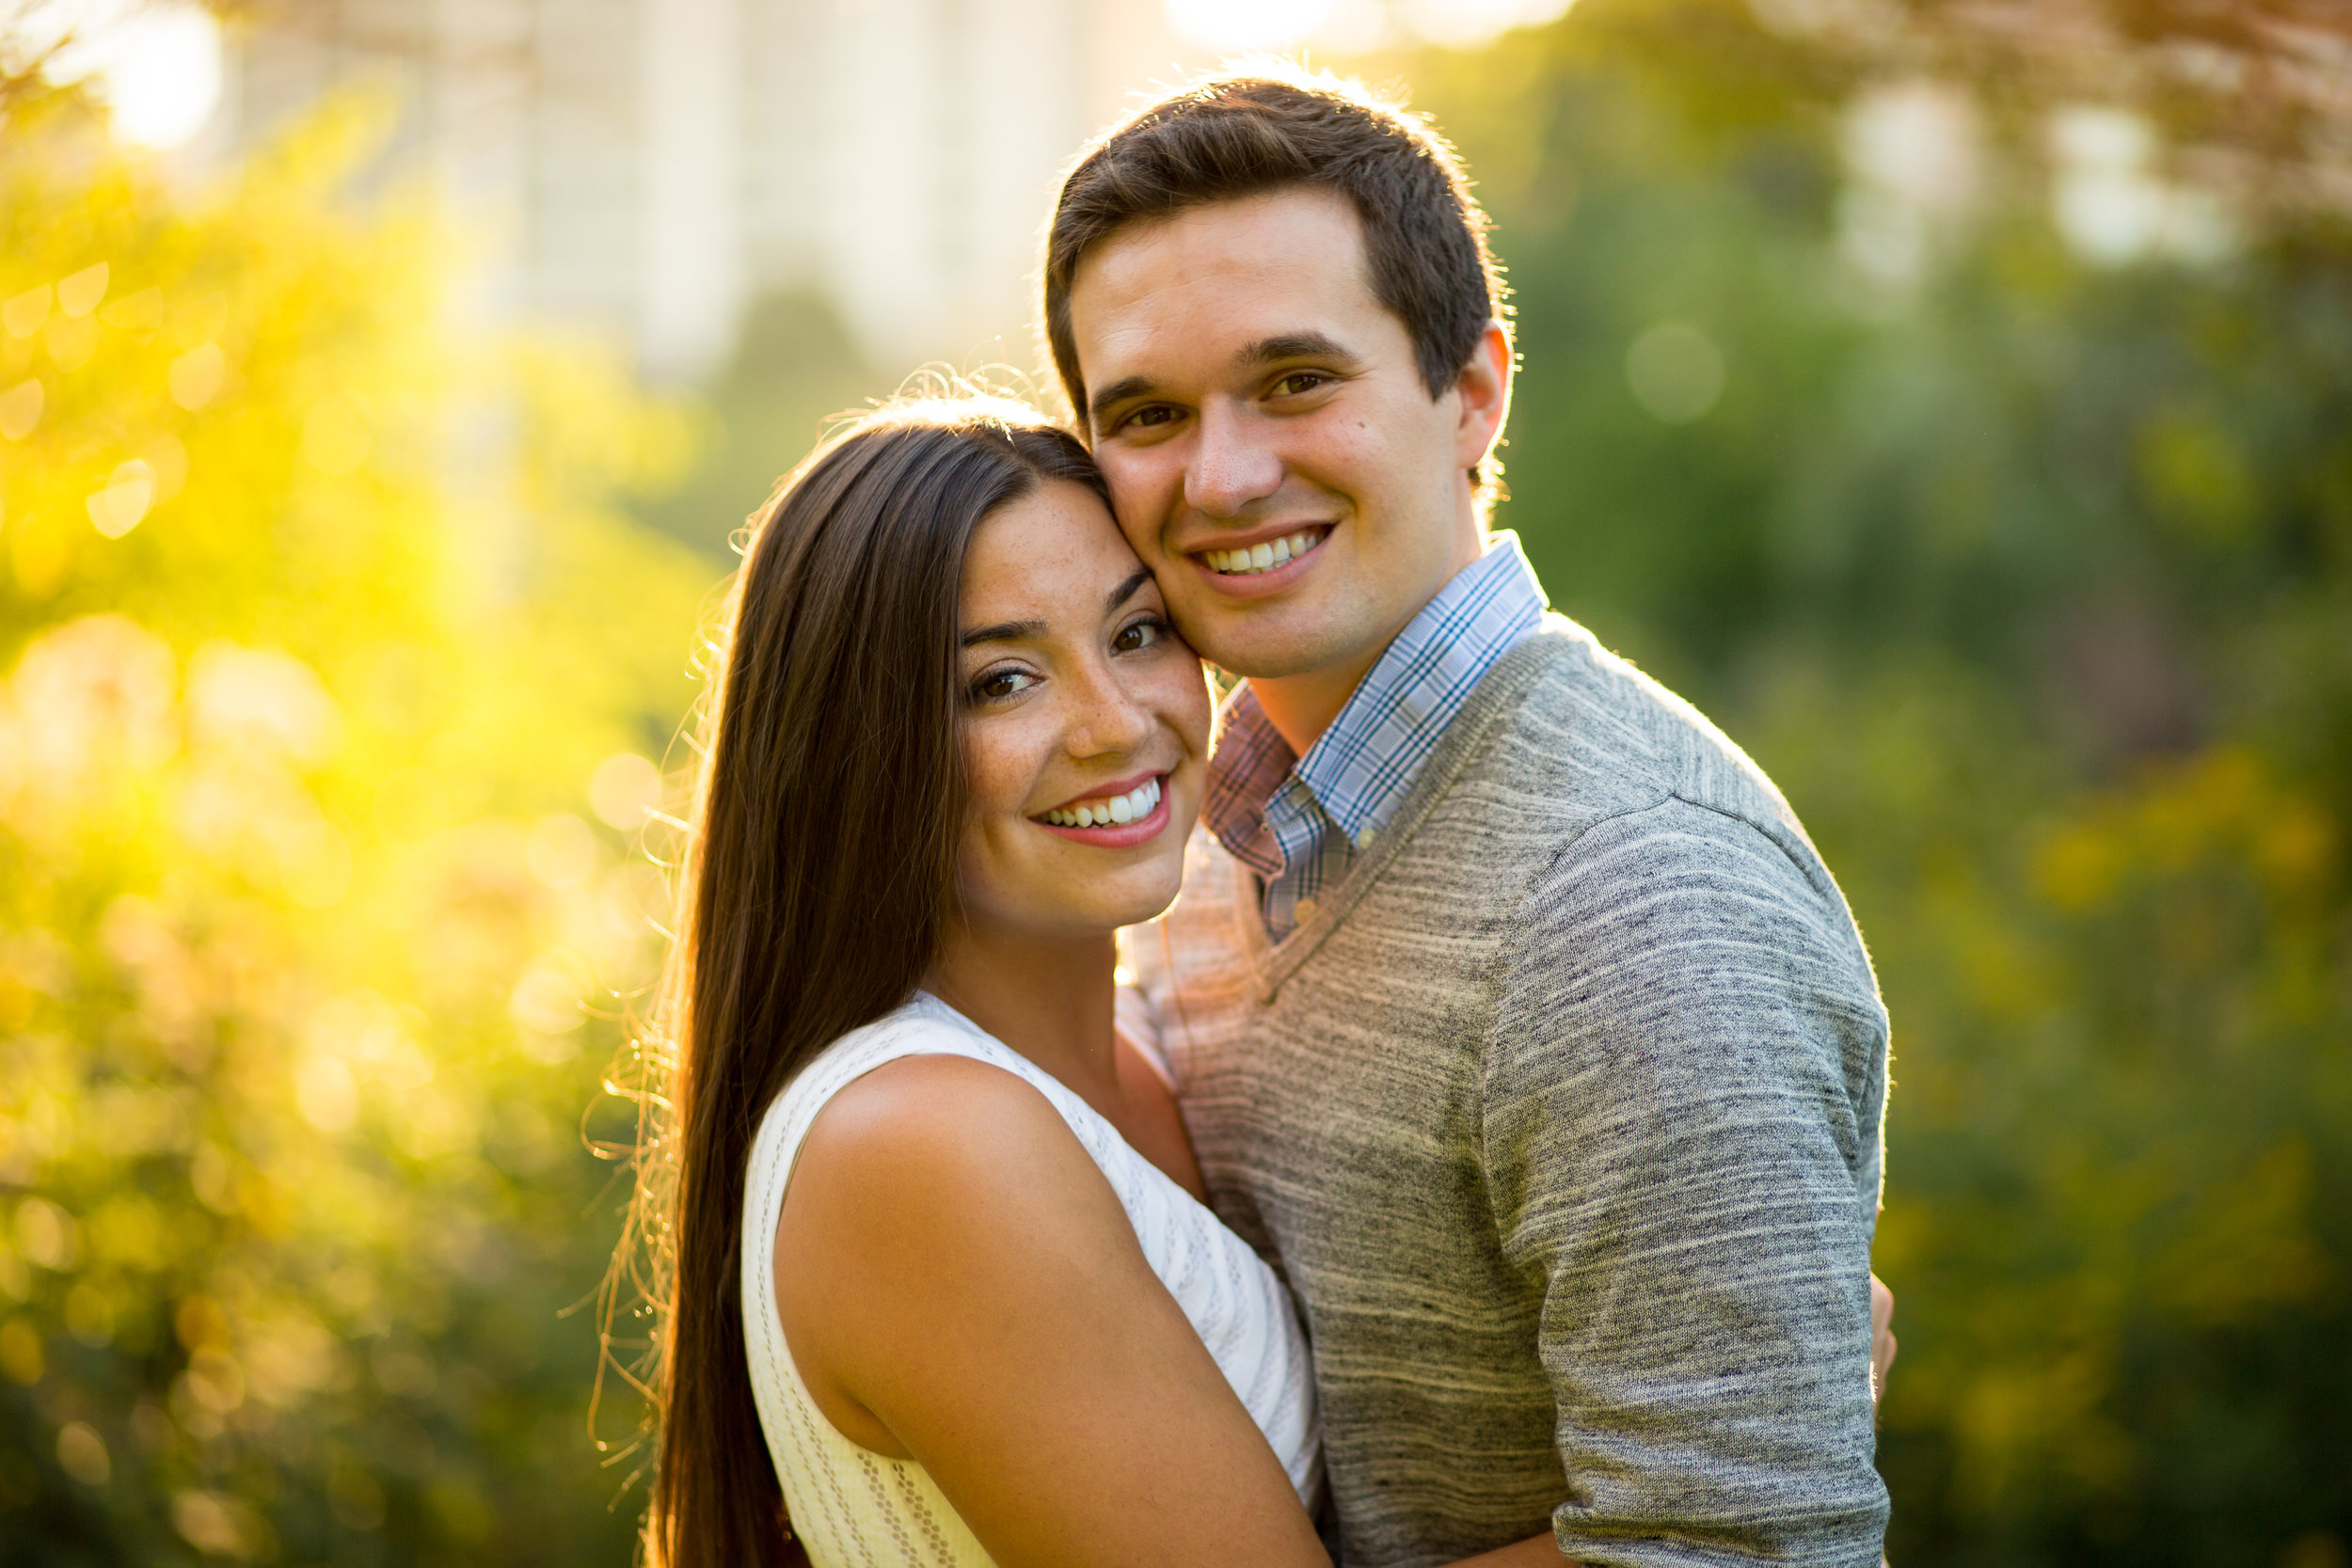 Lincoln Park Engagement Session Erin Evangeline Chicago Wedding Photographer Classic backlight